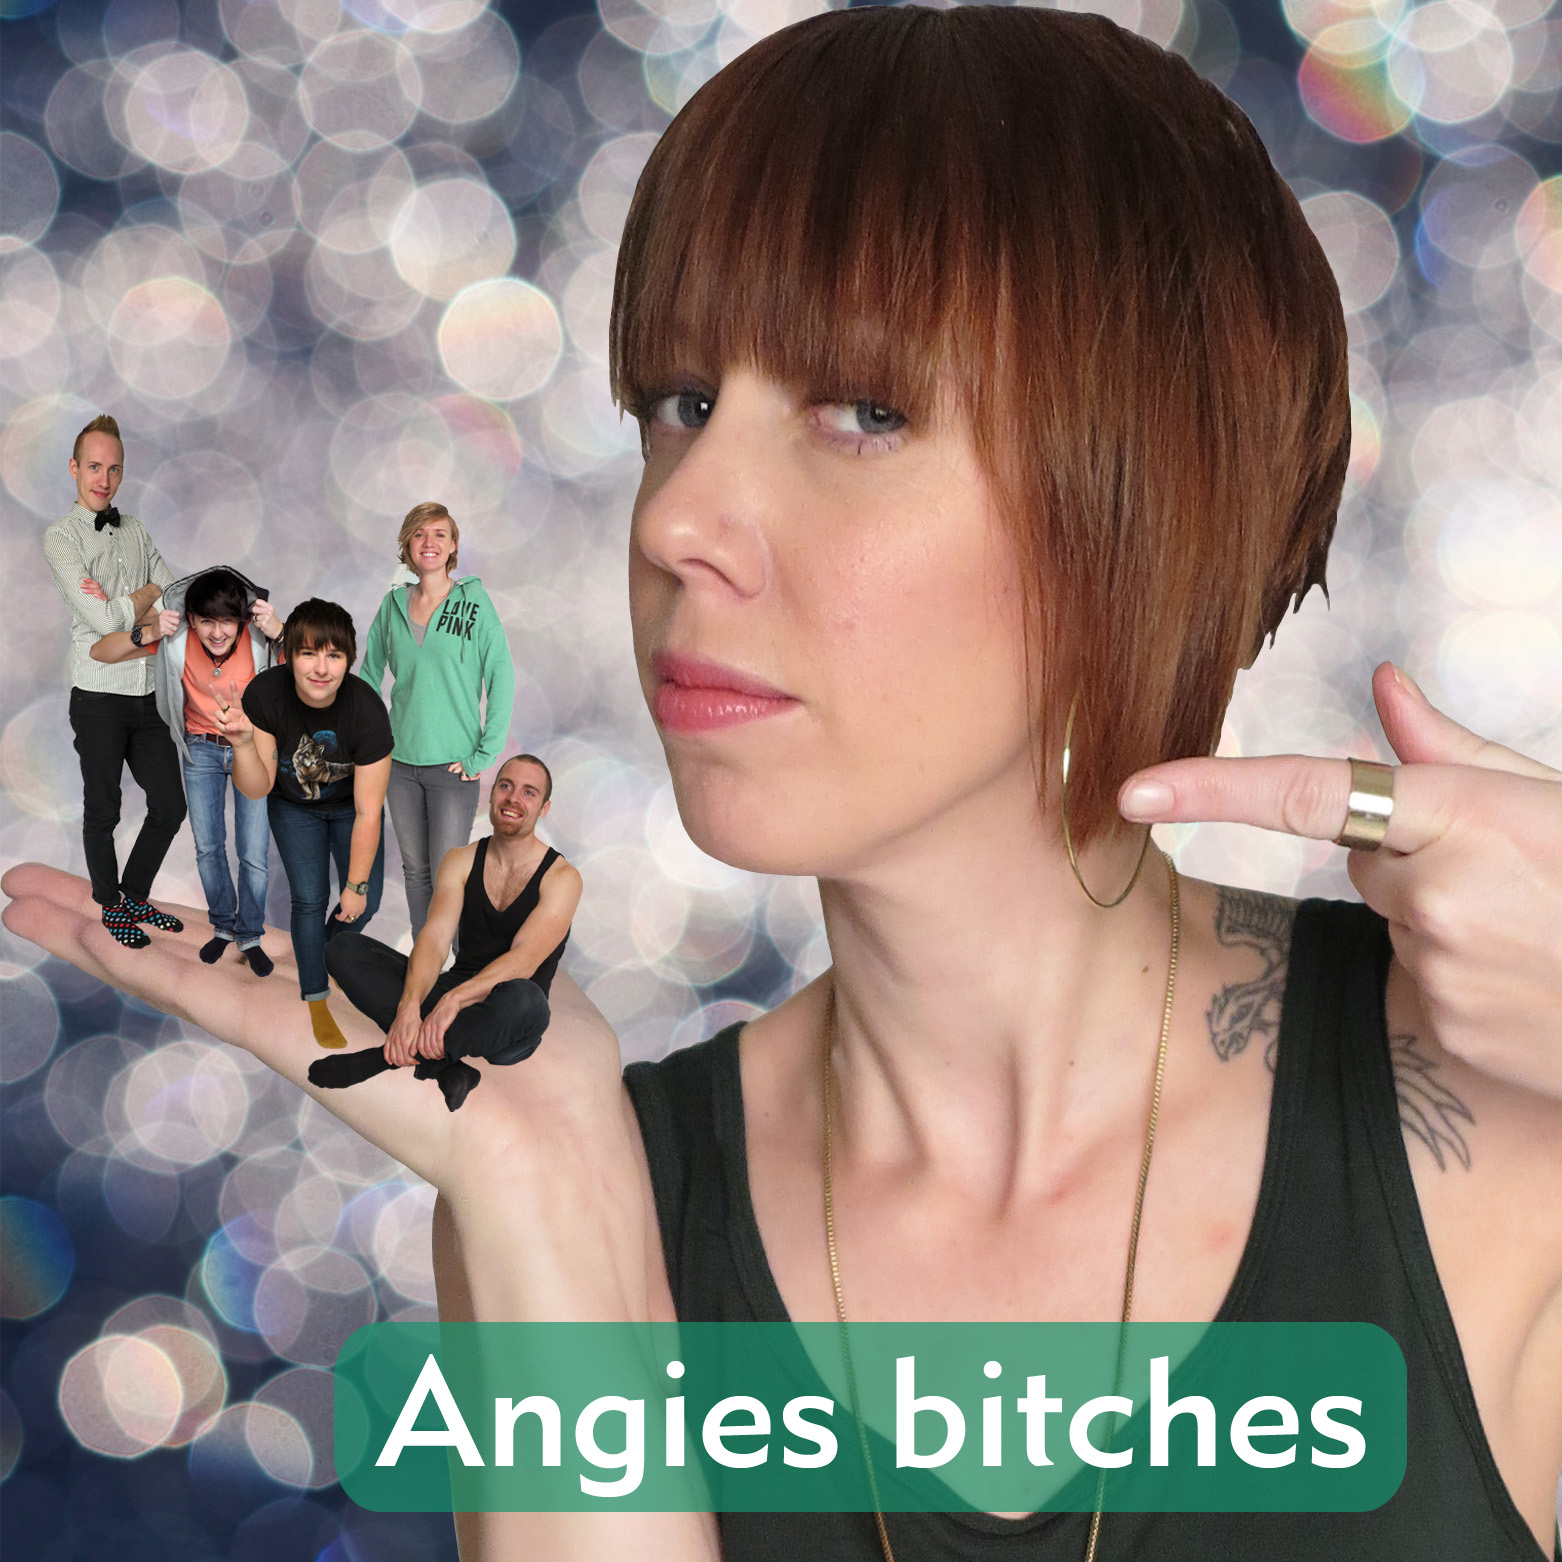 angiesbitches